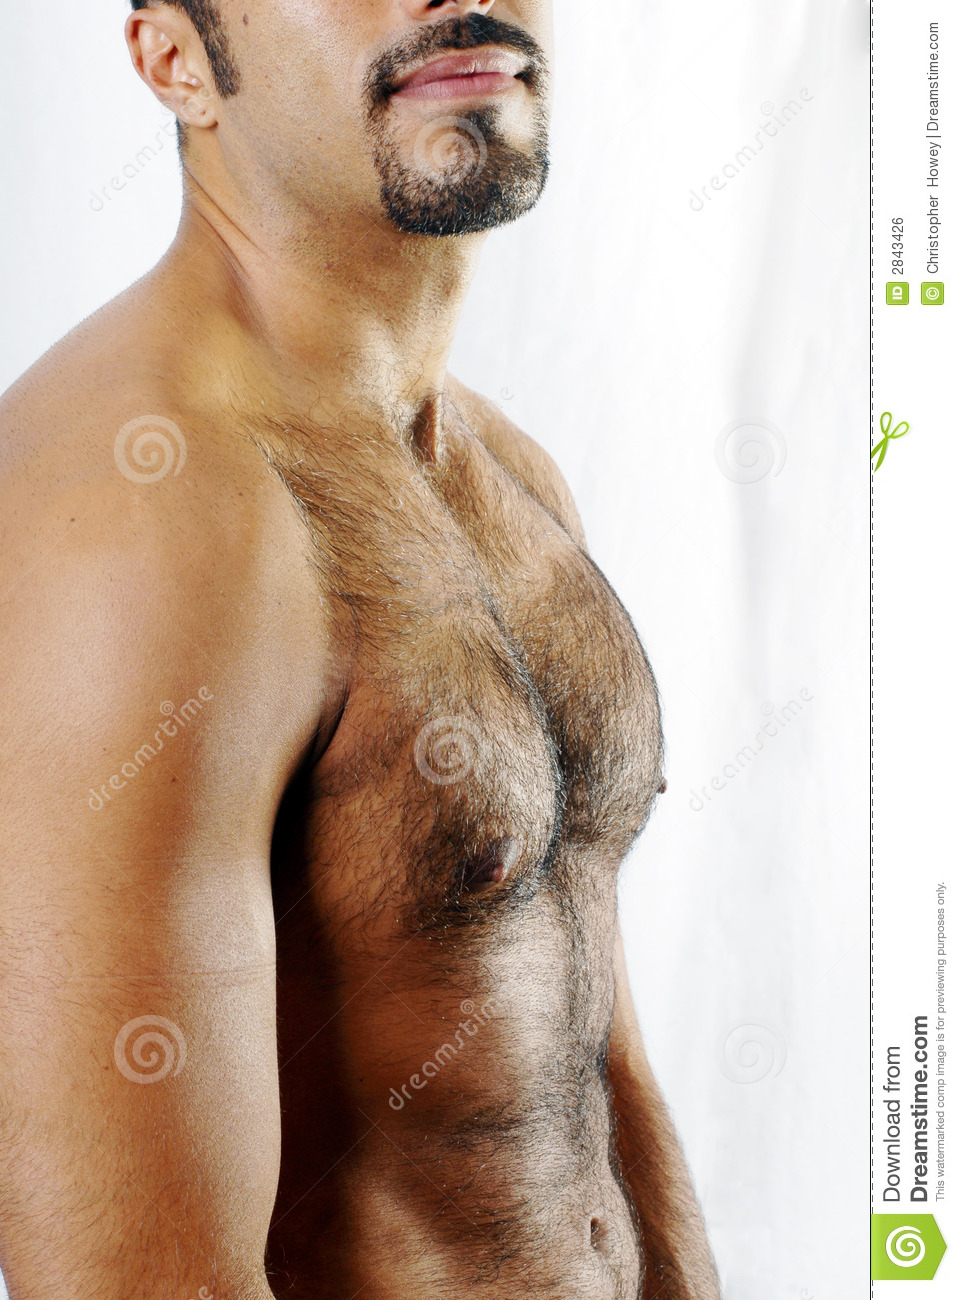 Free muscles hairy chest